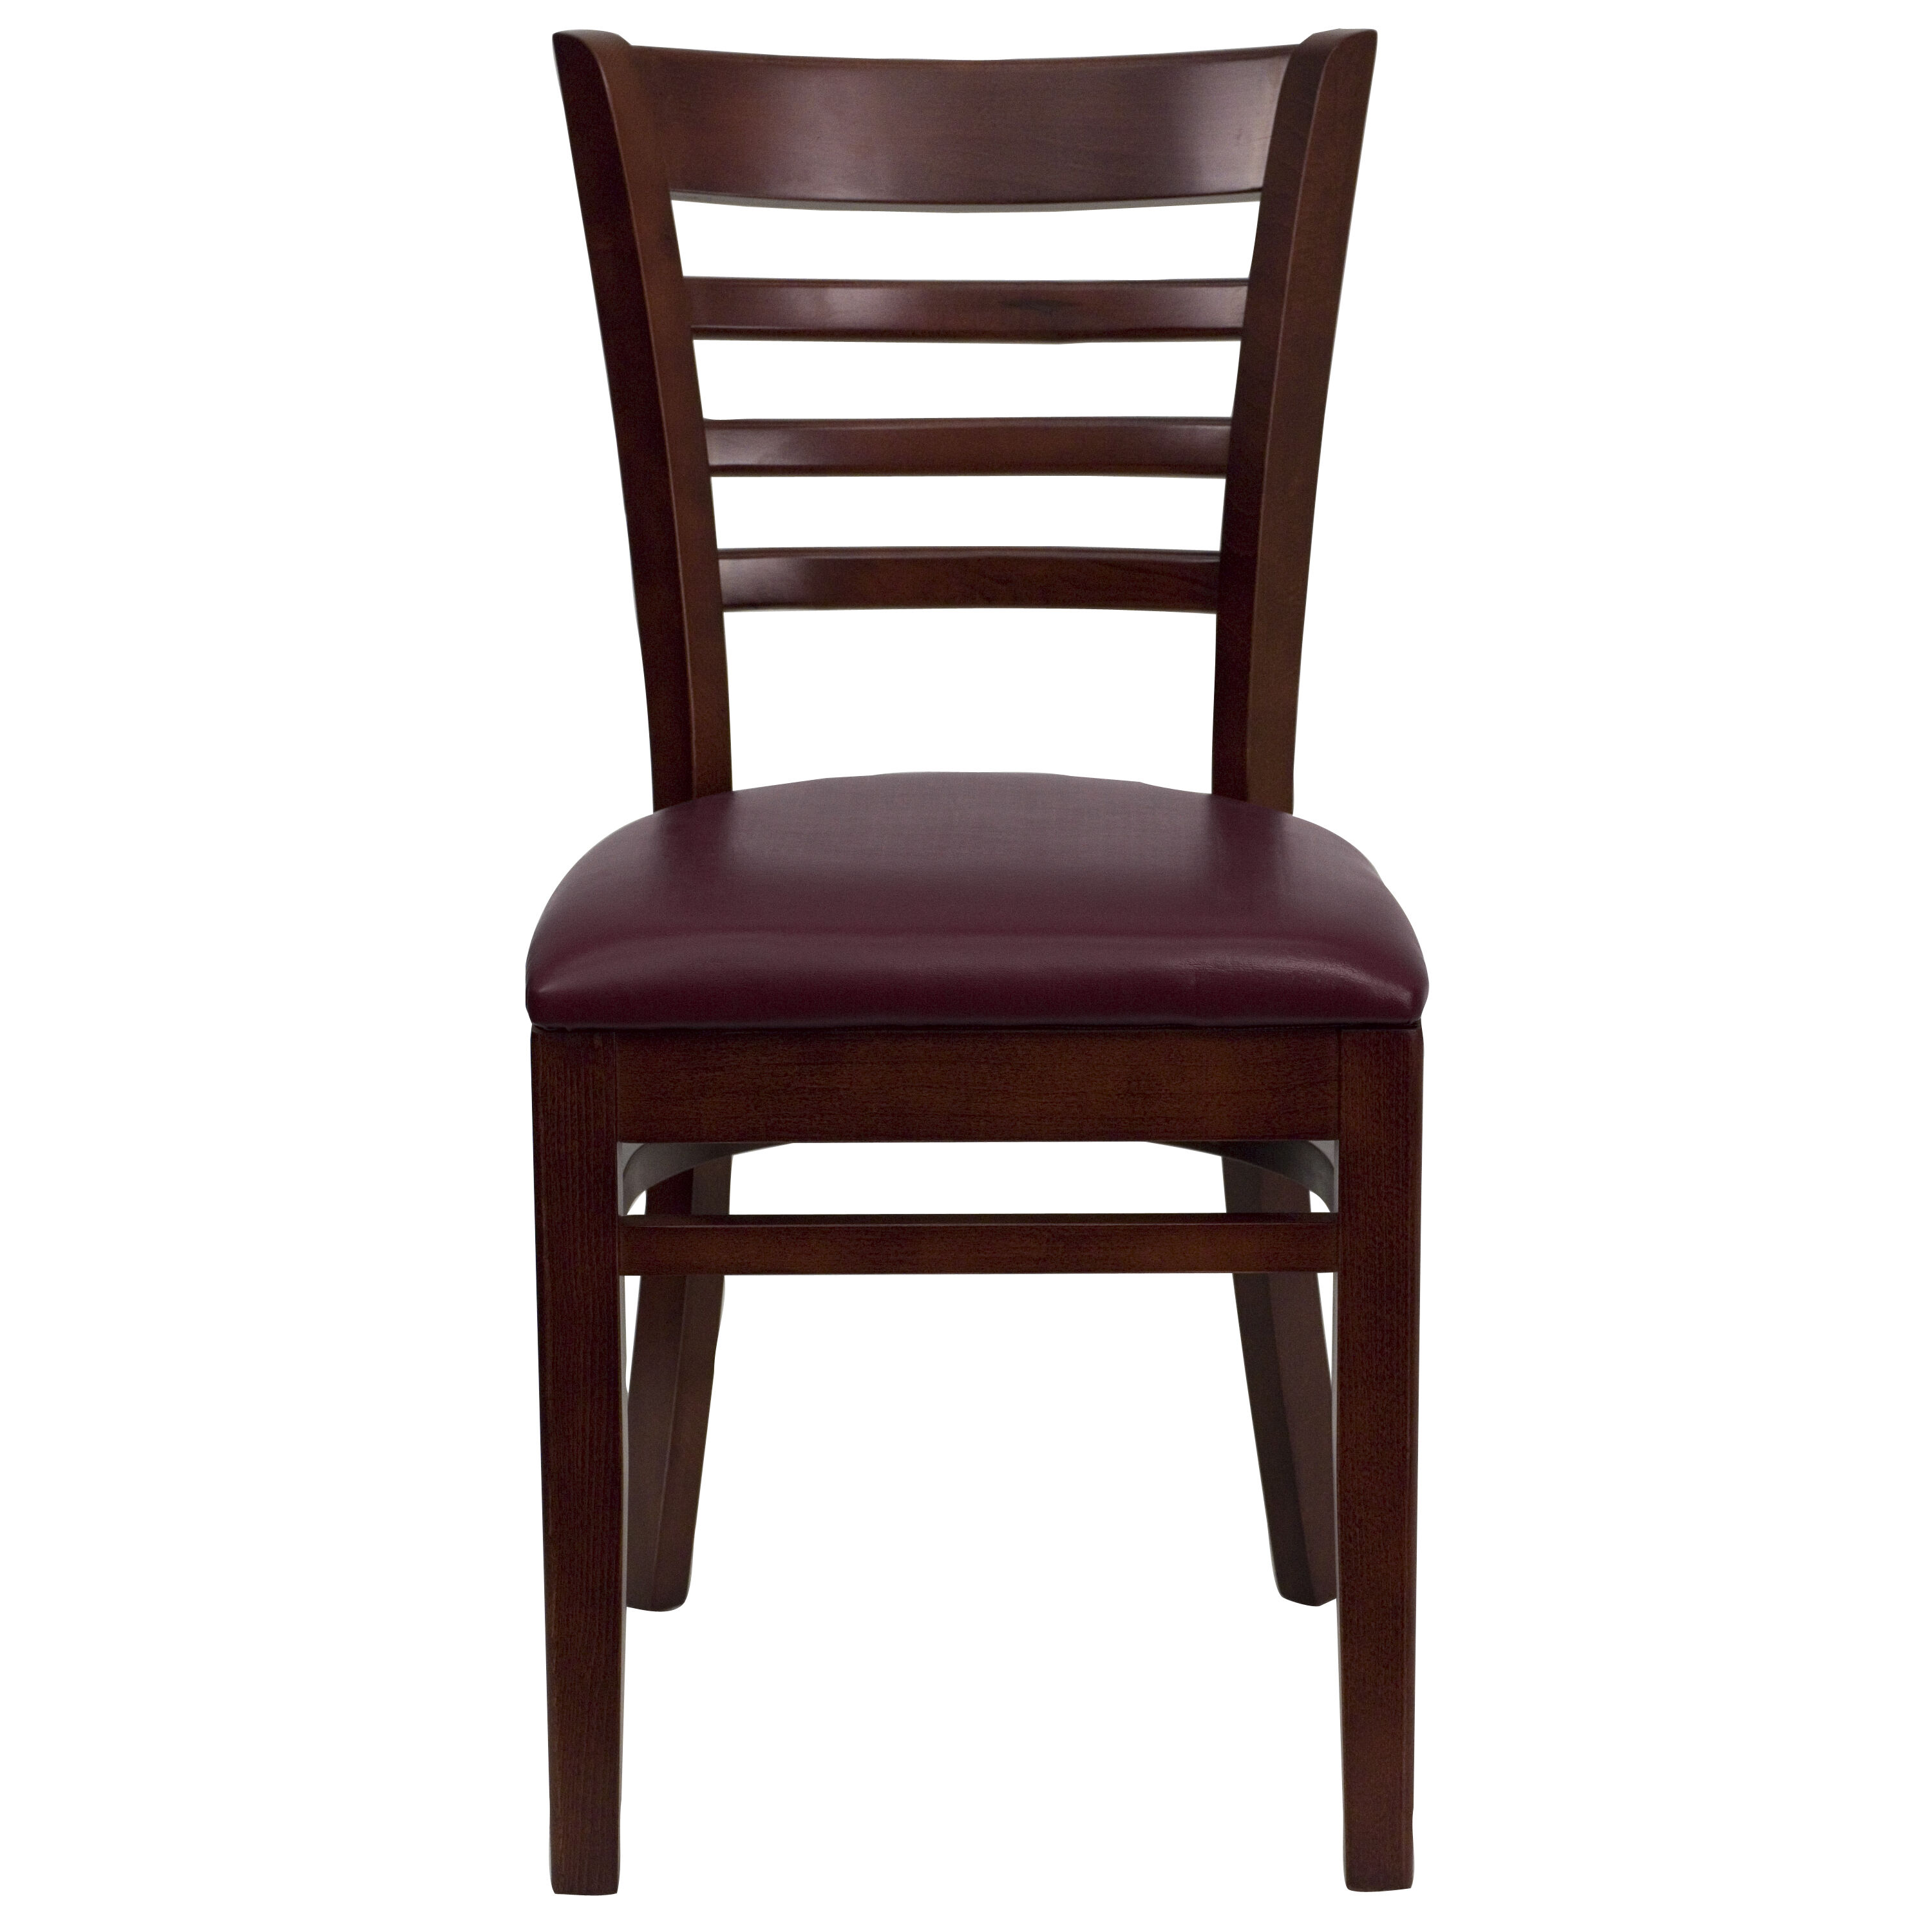 ... Our Mahogany Finished Ladder Back Wooden Restaurant Chair With Burgundy  Vinyl Seat Is On Sale Now ...